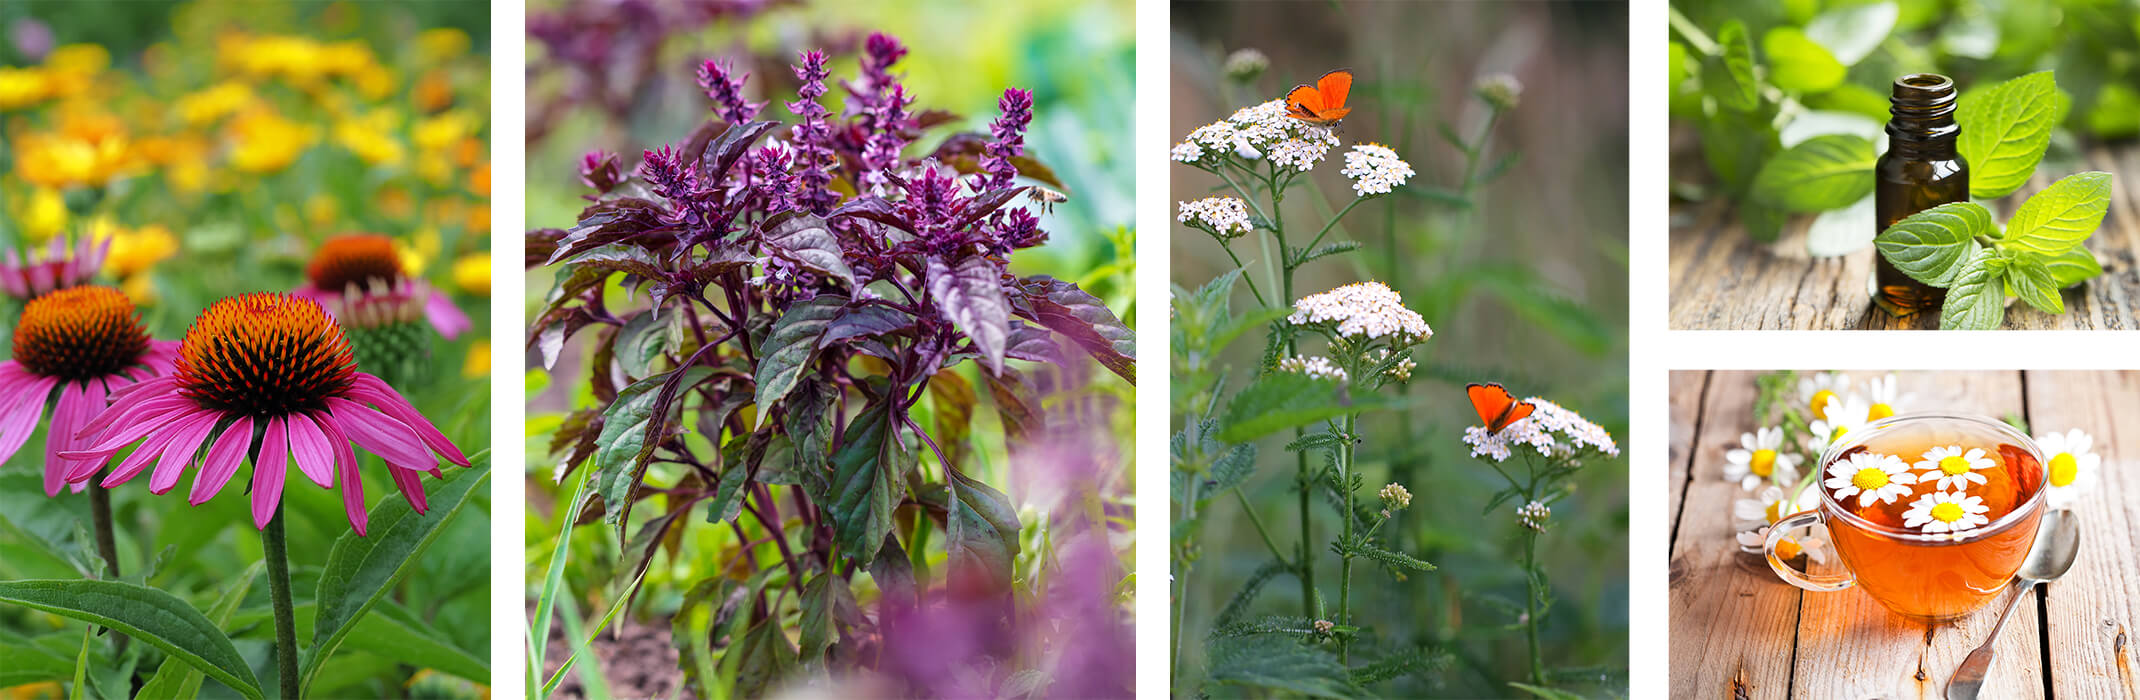 A collage of 5 images: echinacea flowers in garden with yellow blurred flowers in background, purple basil in garden,  white yarrow with orange-red butterflies, a tincture of peppermint on wood near peppermint leaves, and a cup of camomile tea with camomile flowers in it.